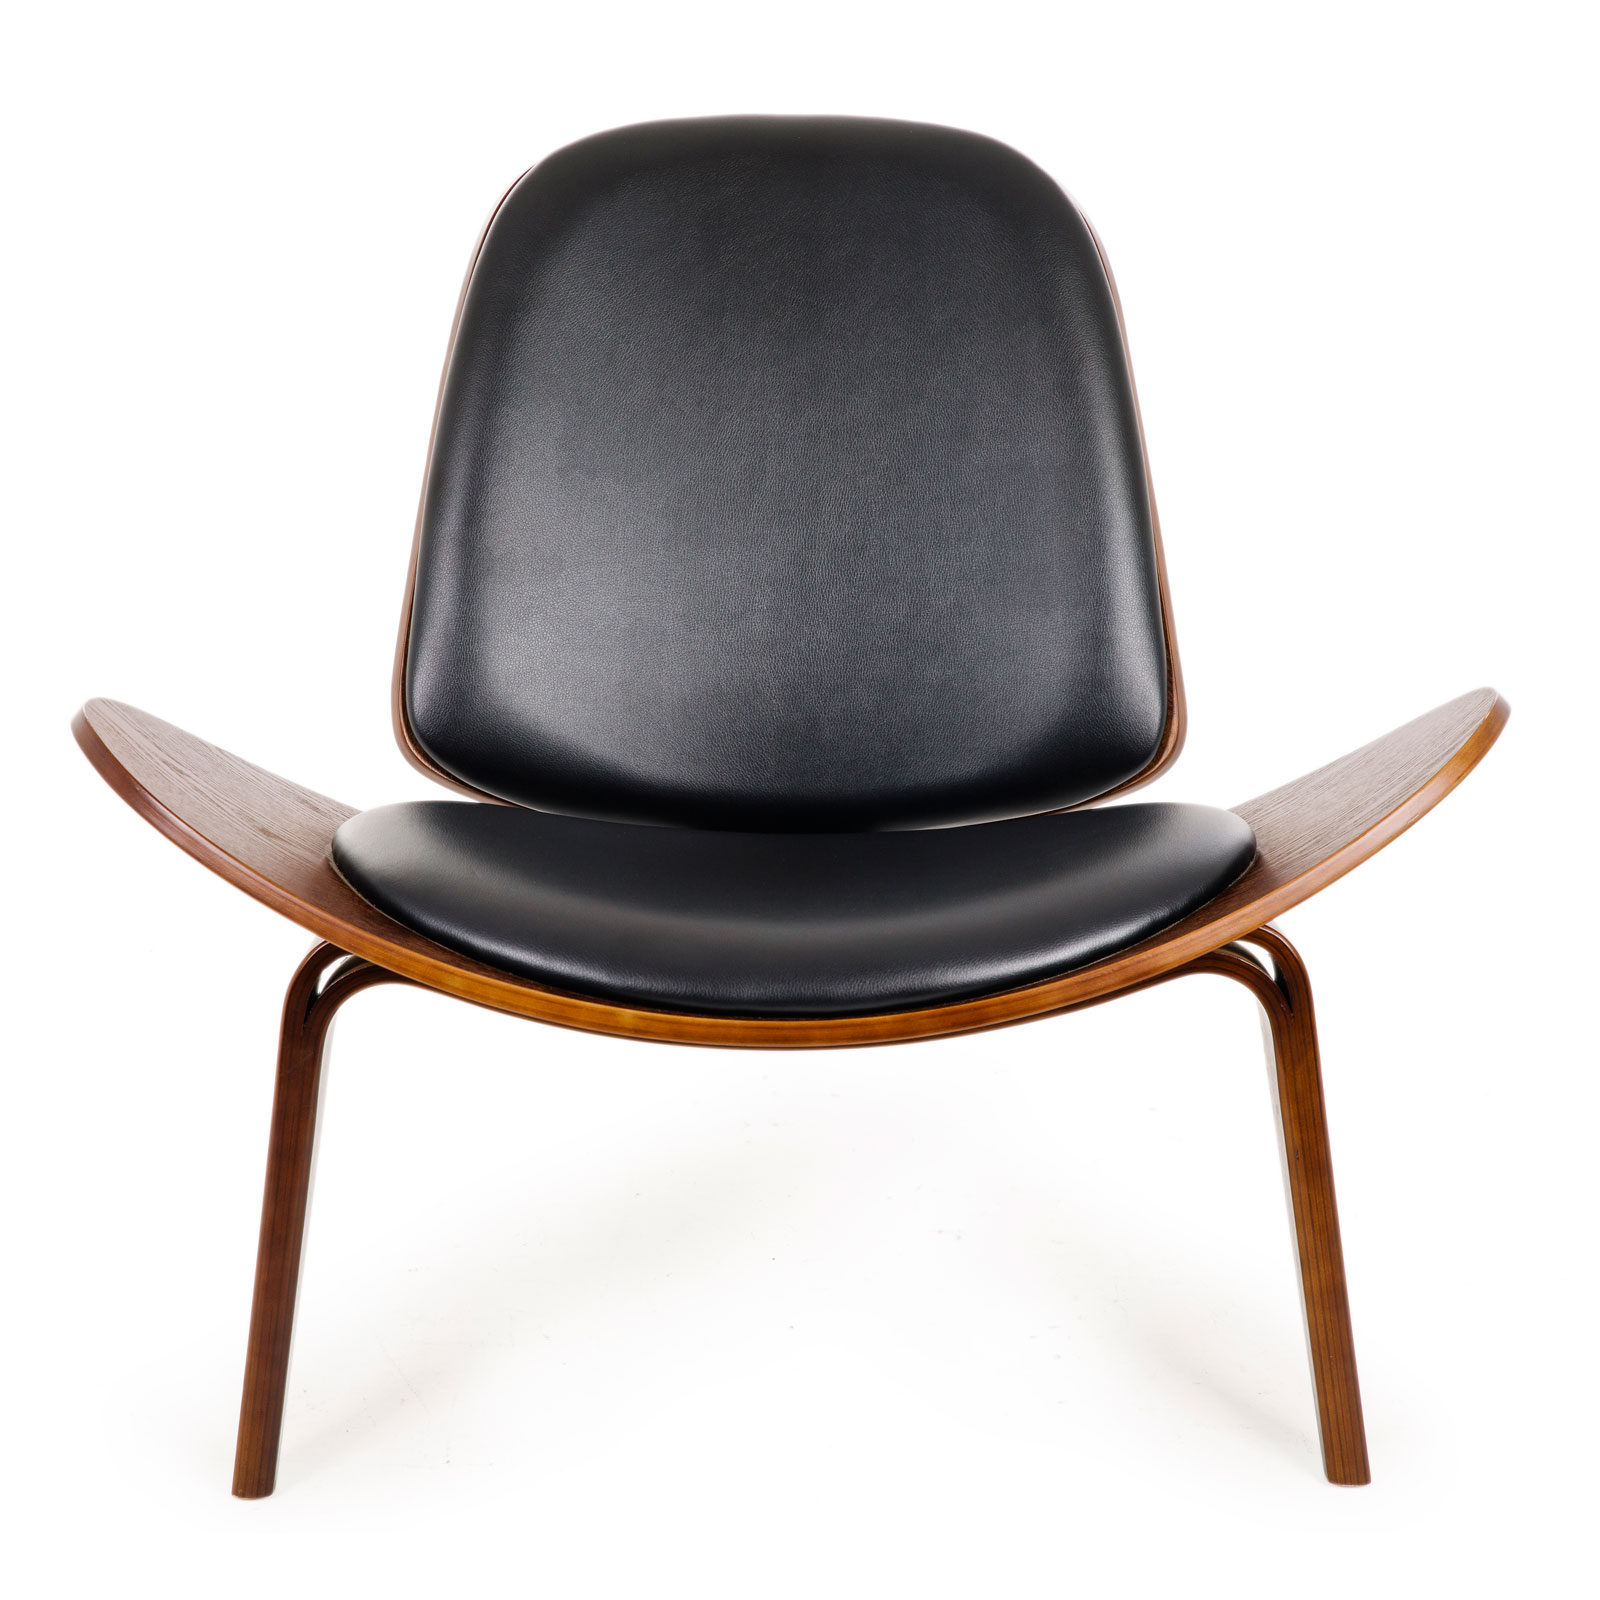 Replica Hans Wegner Shell Chair - Black PU Leather / Walnut Wood